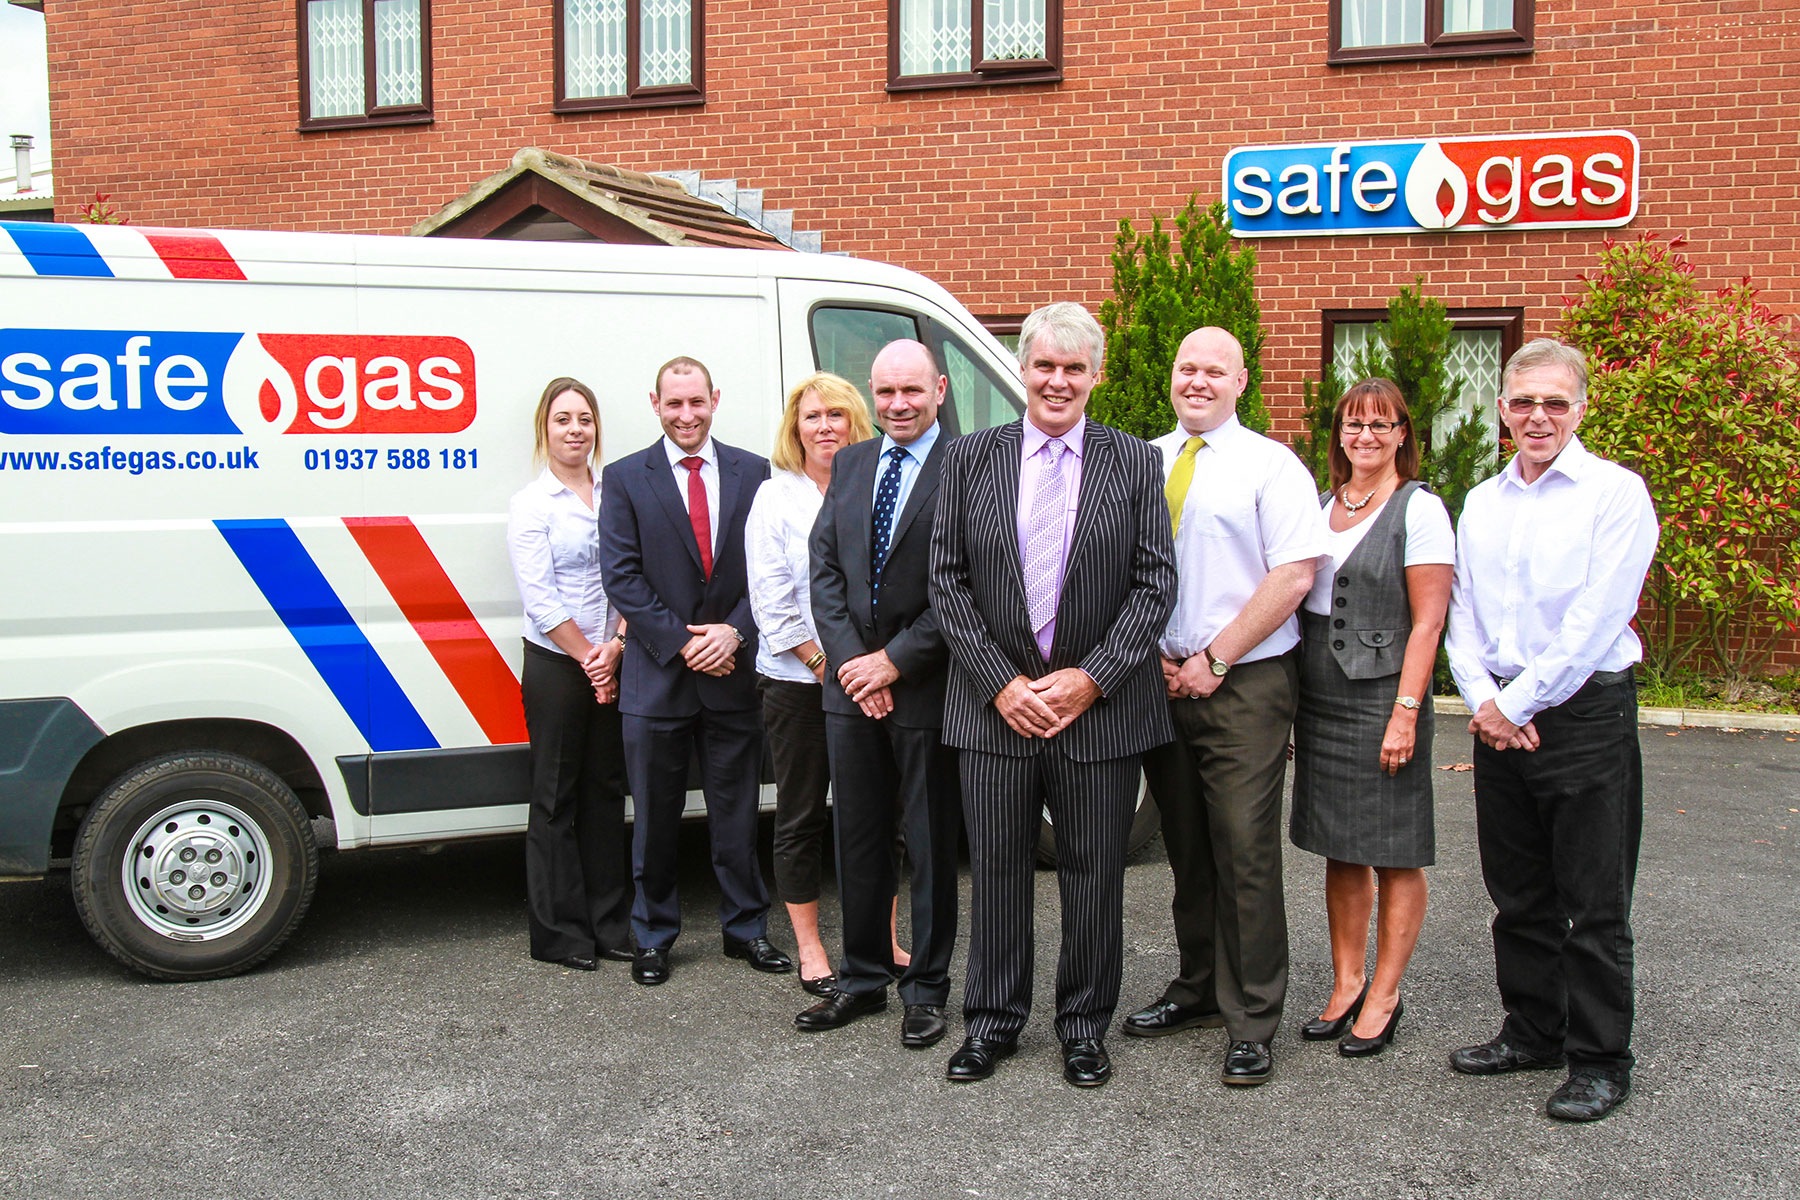 The Safegas team